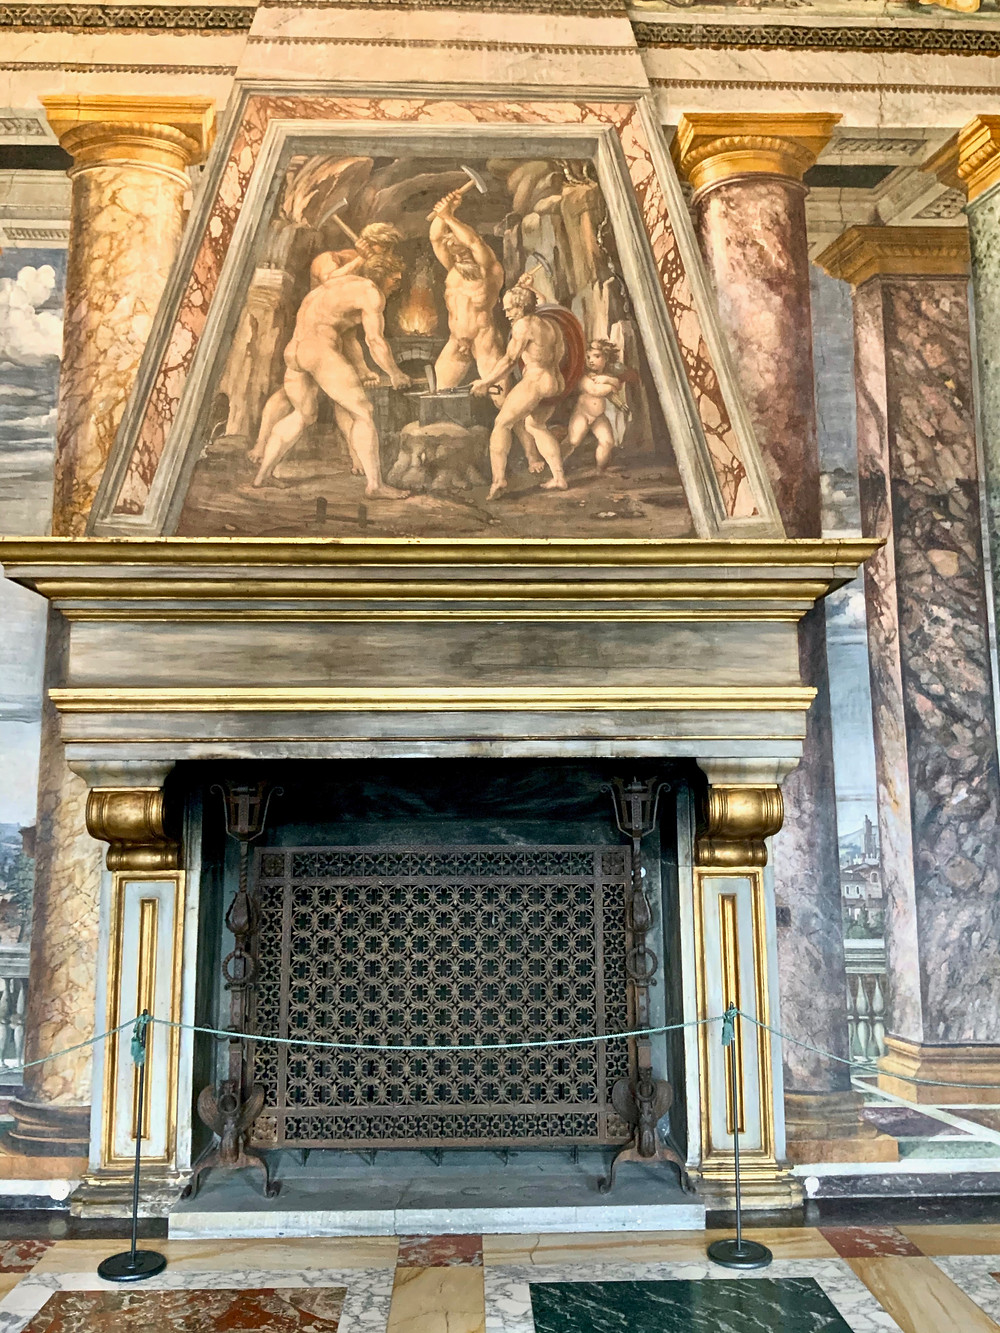 fireplace in the Room of Perspectives